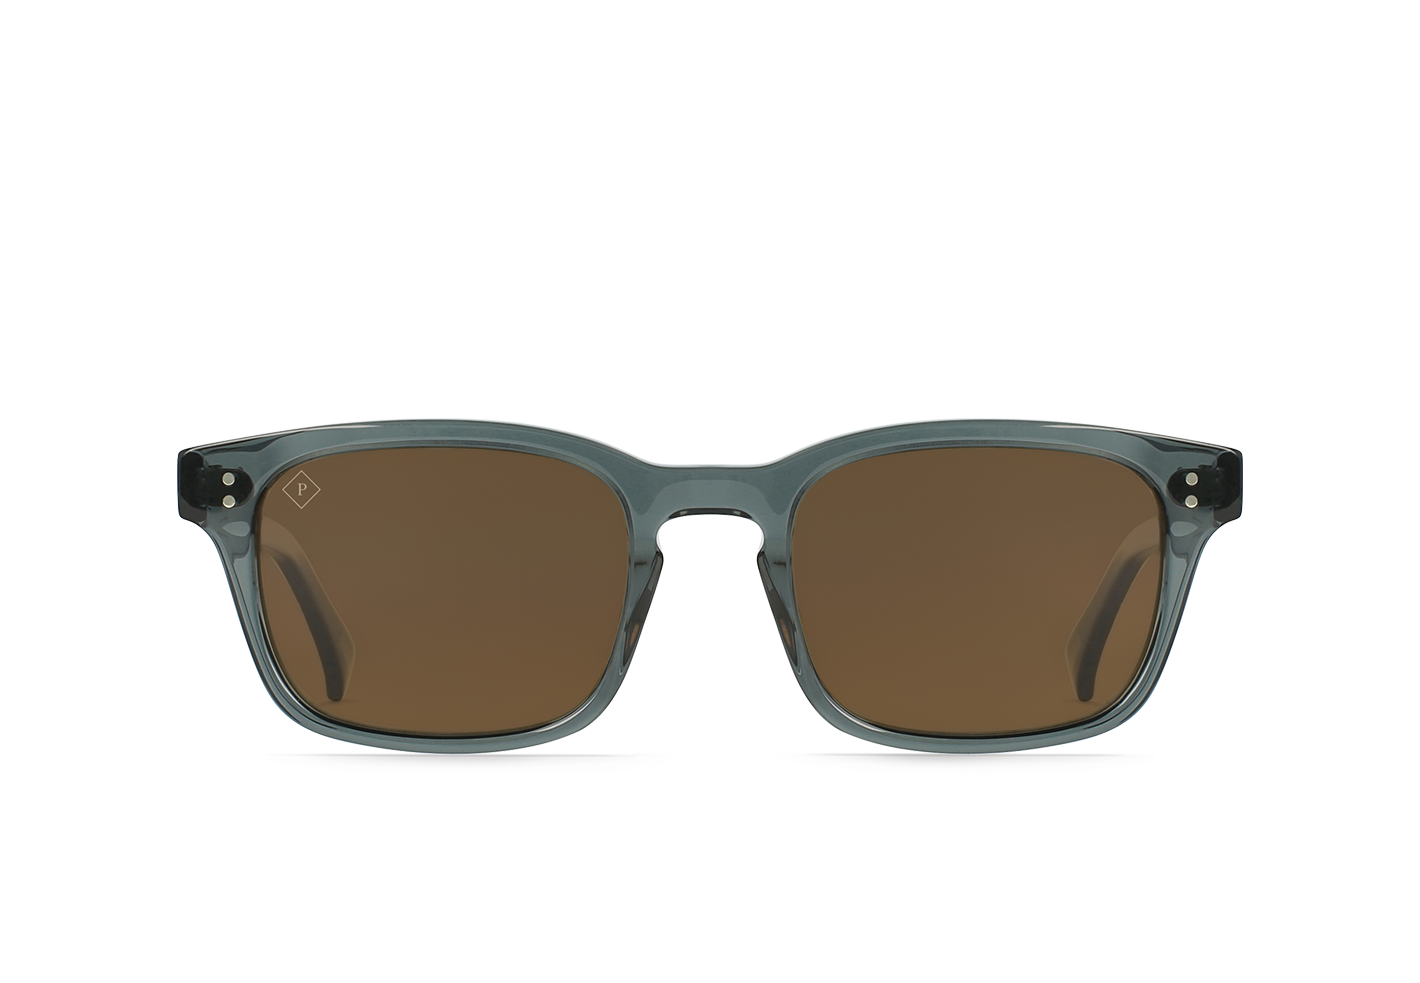 DODSON-Slate / Vibrant Brown Polarized-51